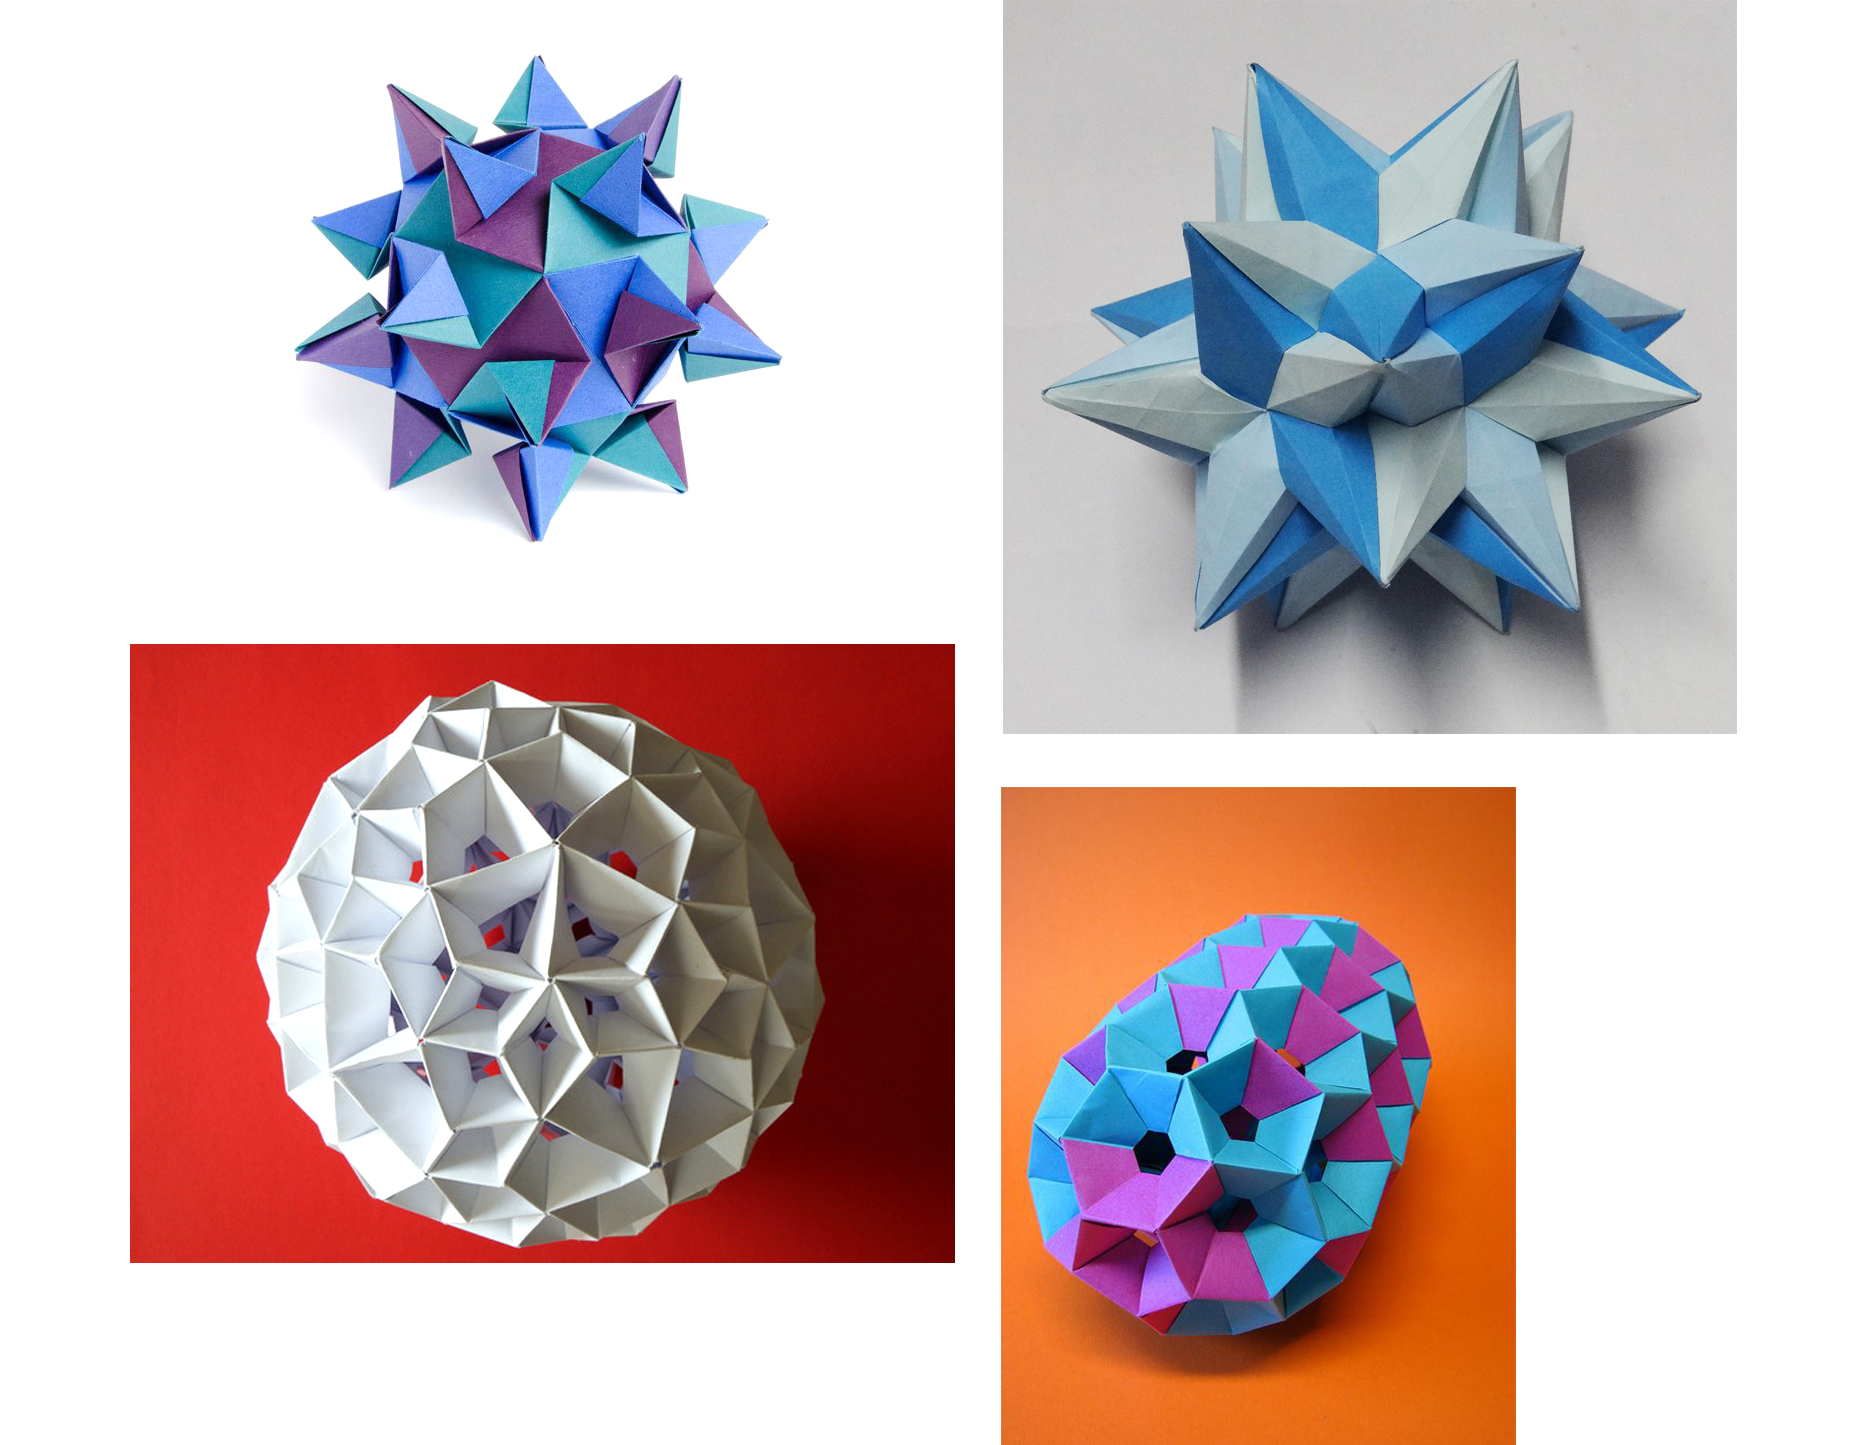 95 Best Modular Origami Instructions images in 2020 | Modular ... | 1445x1874